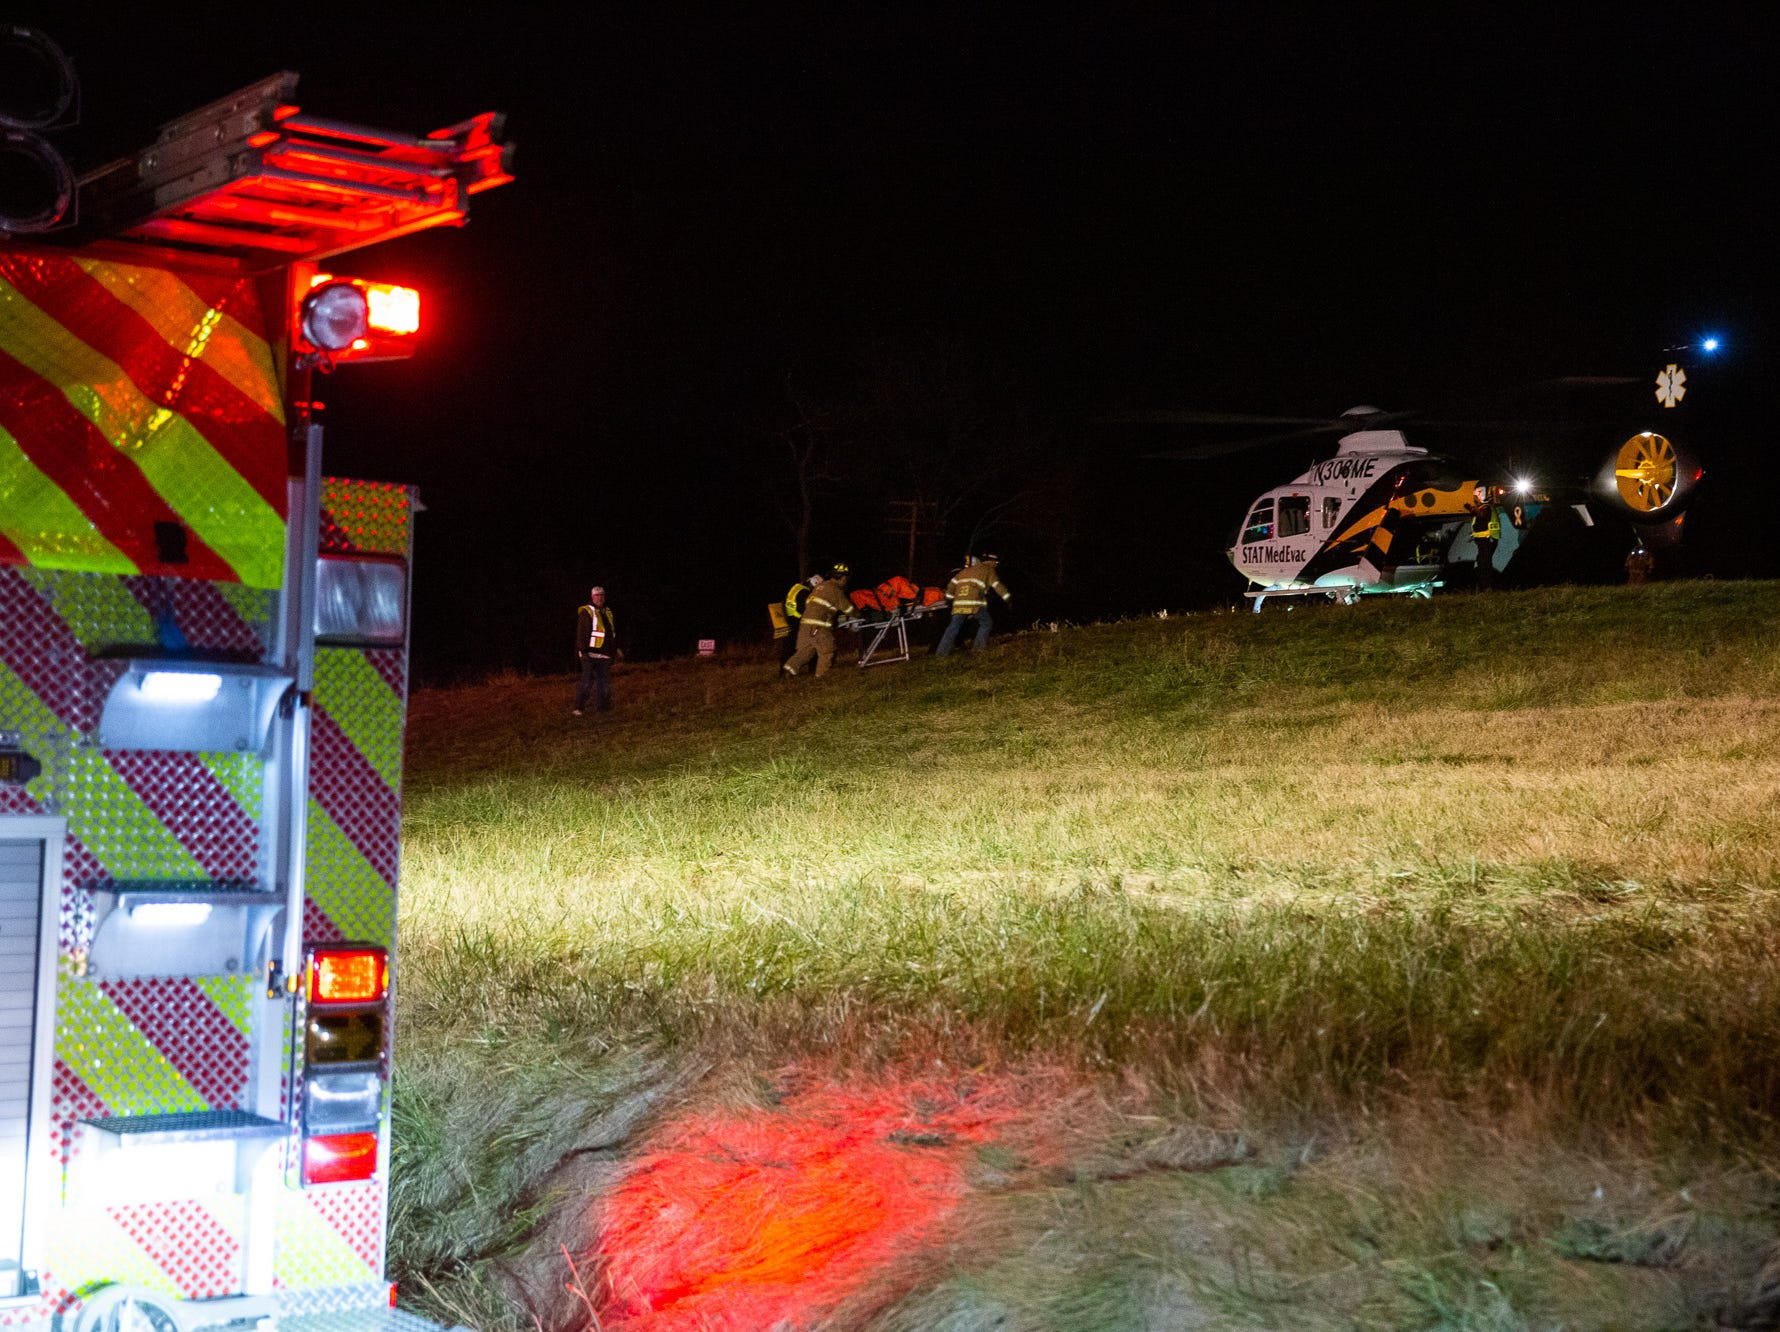 Crews transport a patient to a waiting medical helicopter at the scene of a crash on the 2200 block of East Berlin Road on Monday, Dec. 24, 2018, in Reading Township. Hampton Fire Chief P.J. Trimmer said two people were flown to York Hospital.